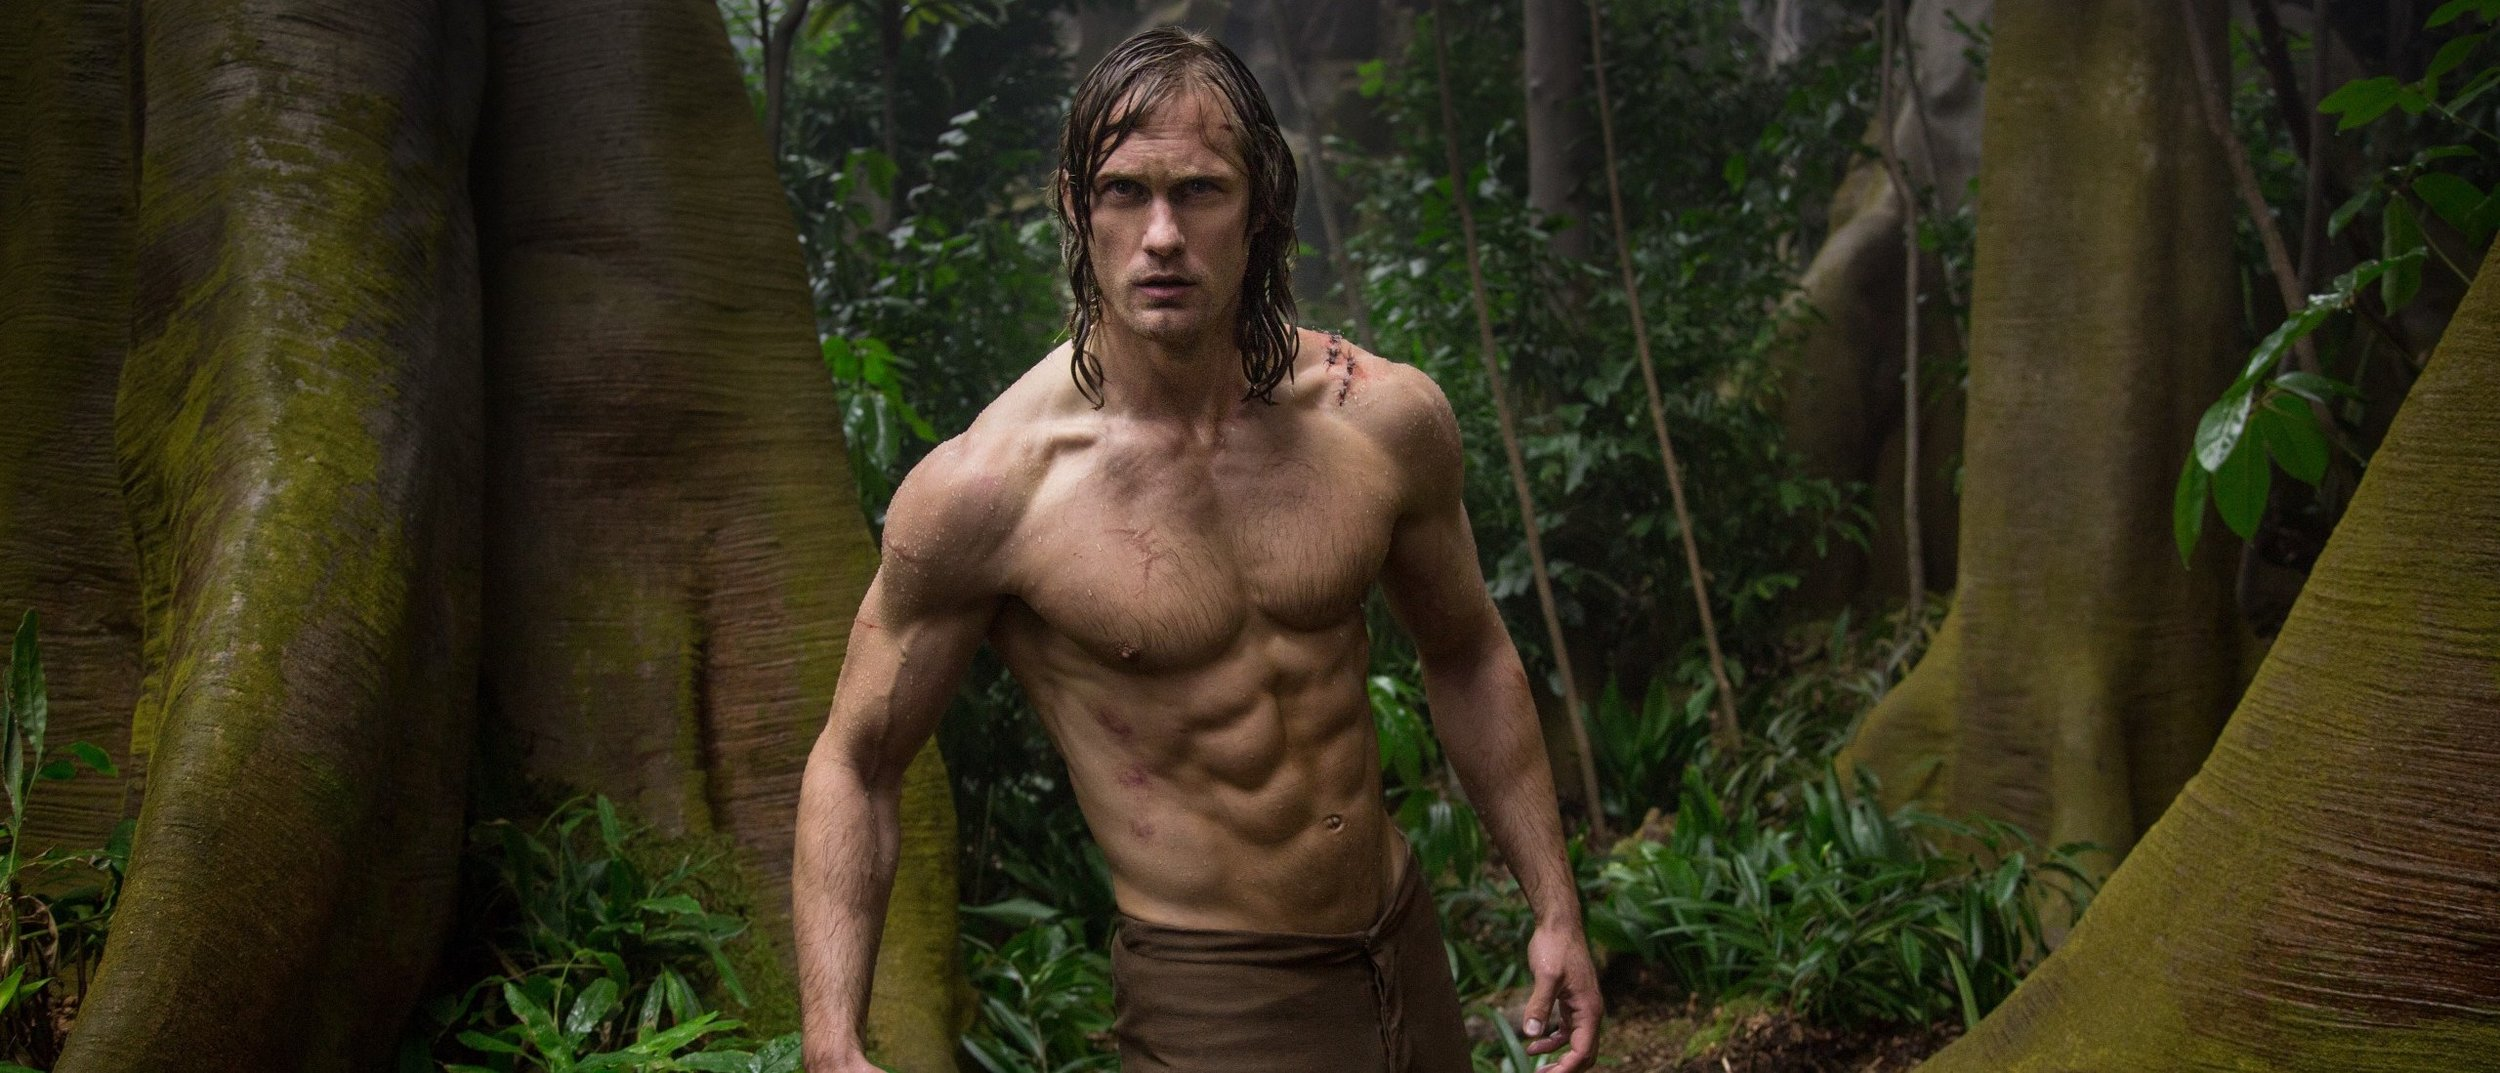 The Legend of Tarzan - Amanda discusses The Legend of Tarzan with guest Chris in the inaugural episode. They talk about weird fake American accents and how they're now a bit worried about the upcoming Fantastic Beasts and Where to Find Them after watching Tarzan.